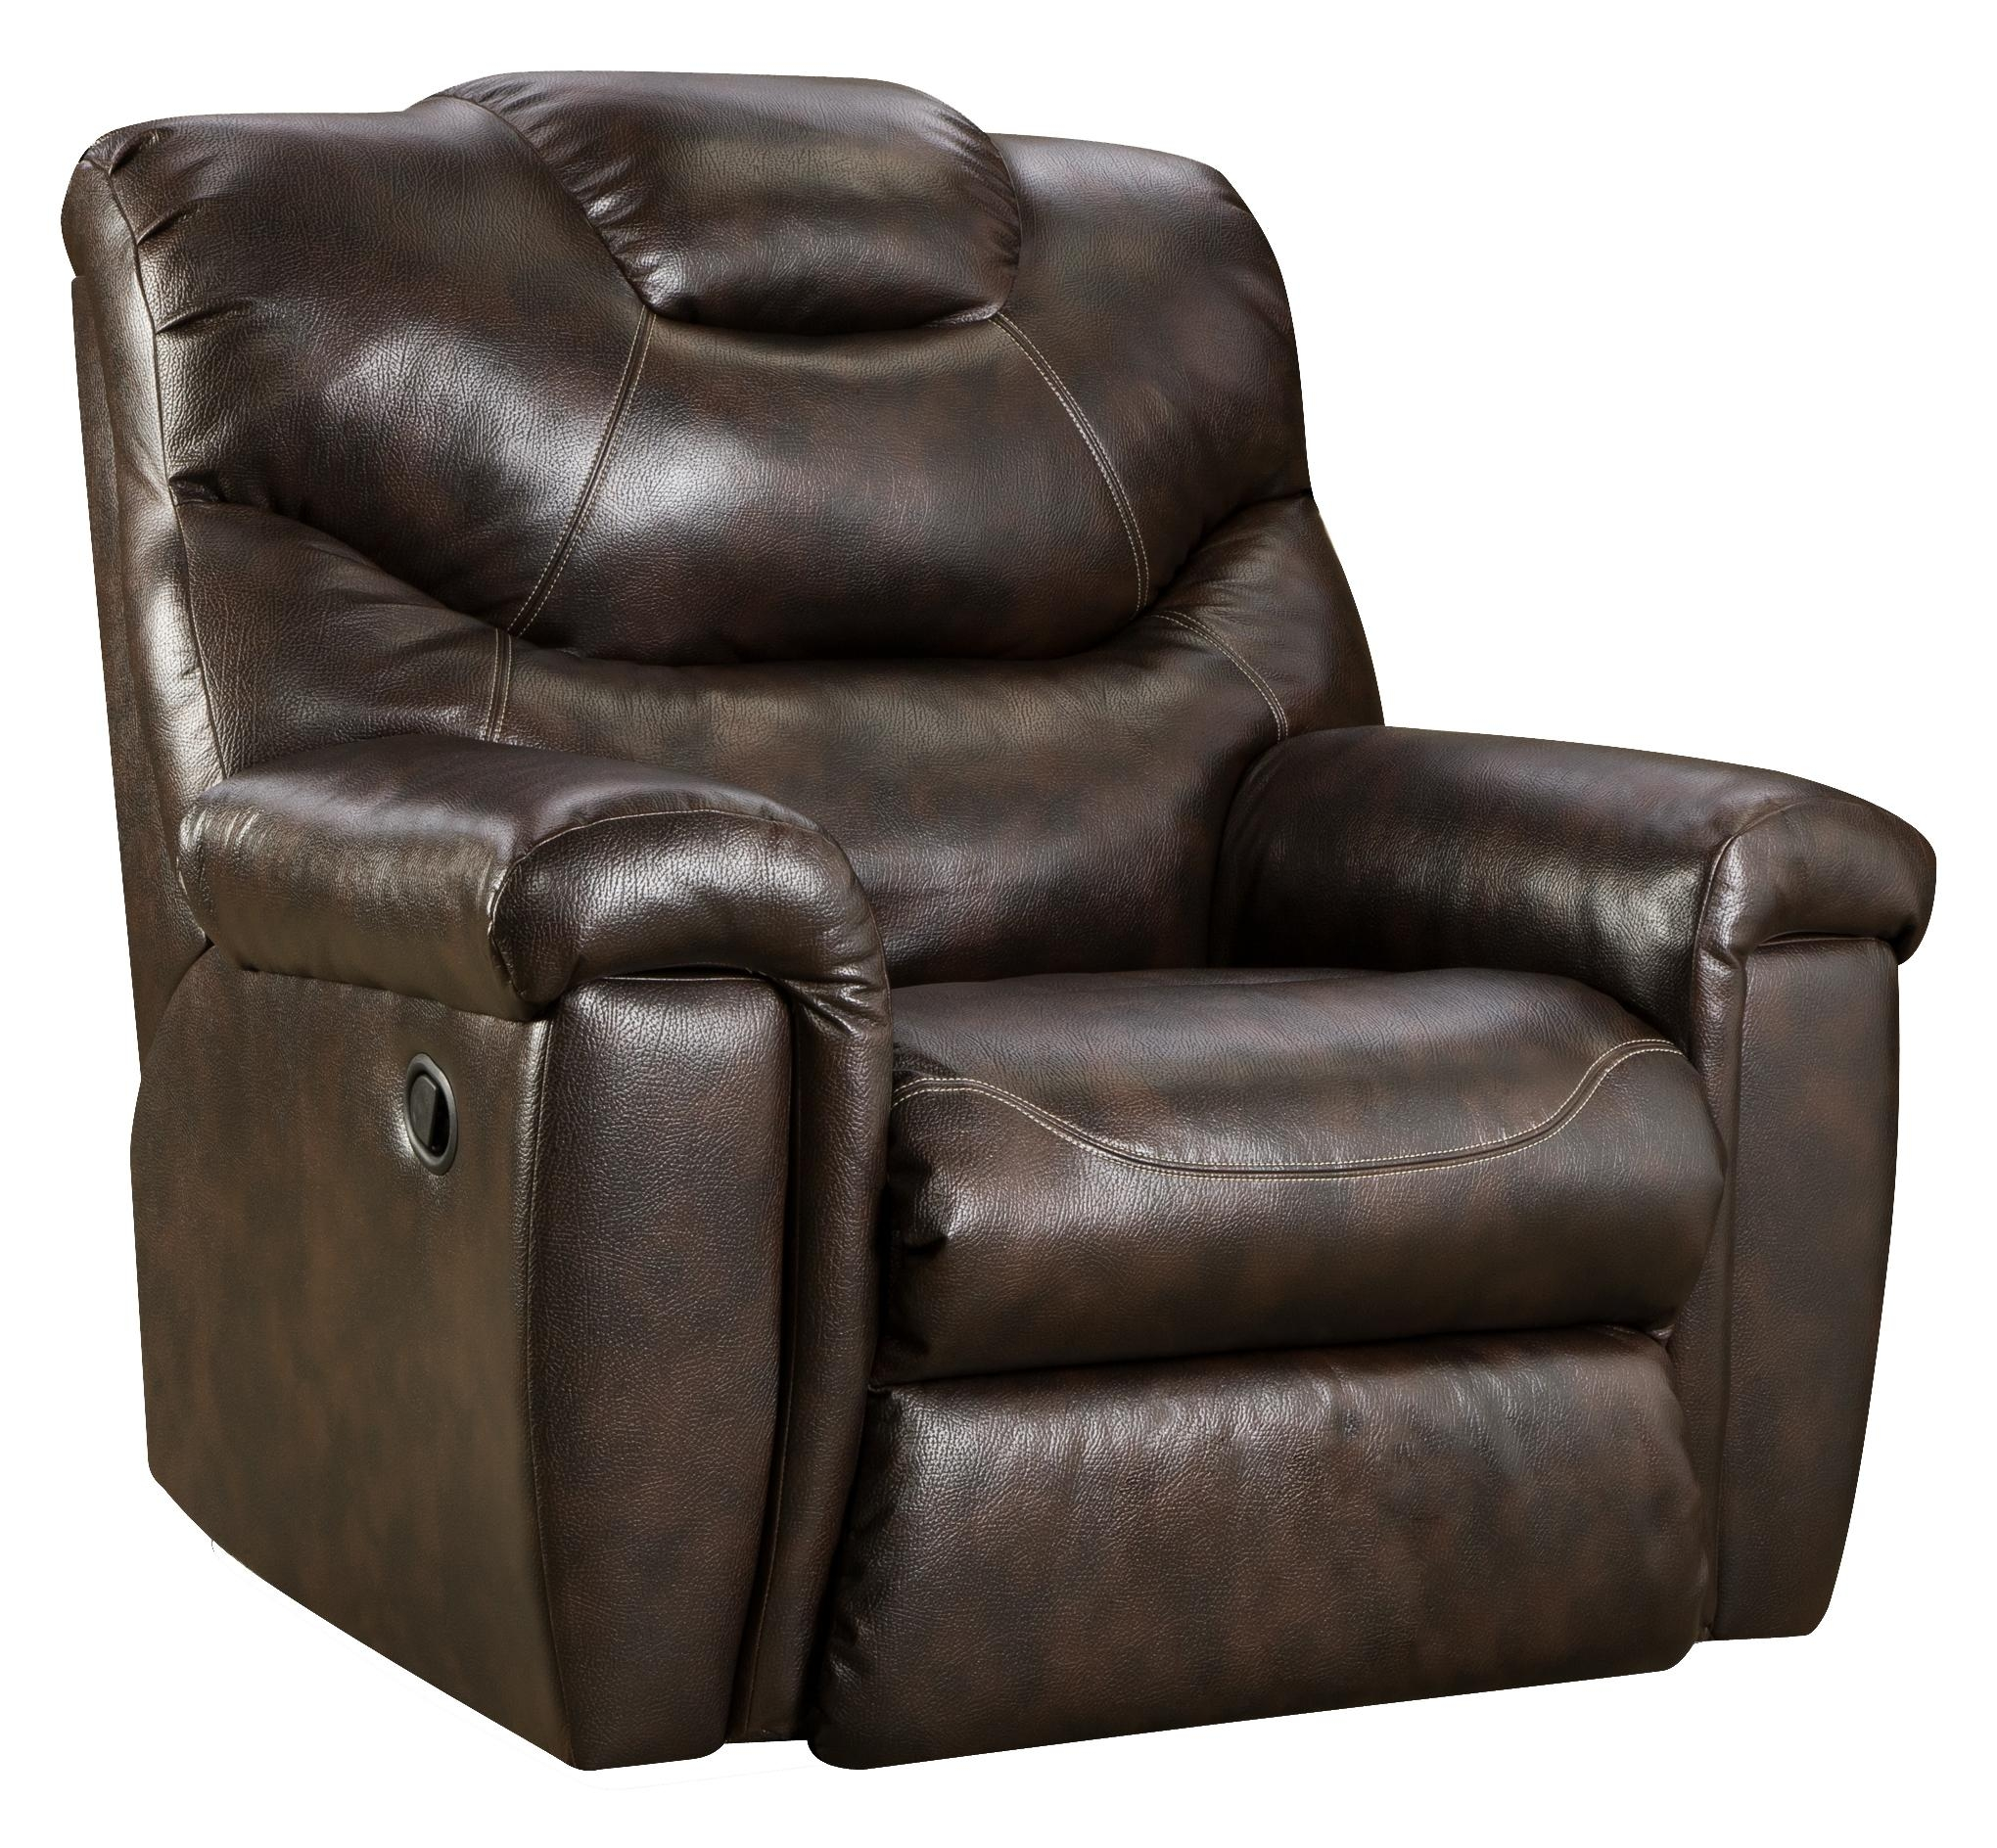 Double Wide Recliners Foter